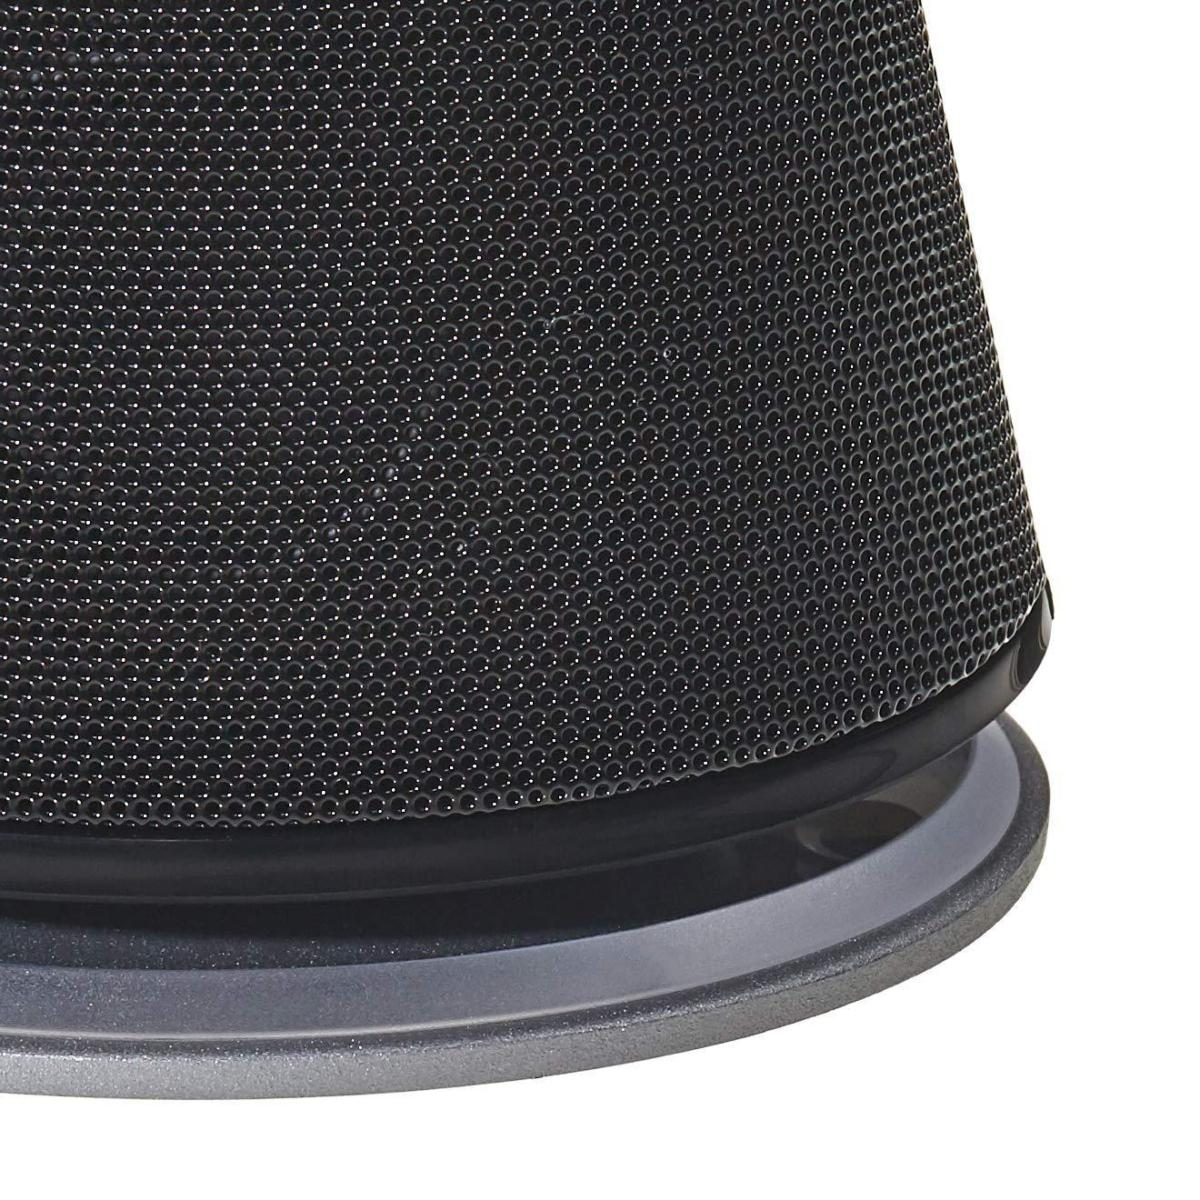 amazonbasics usb powered computer speakers detail bottom